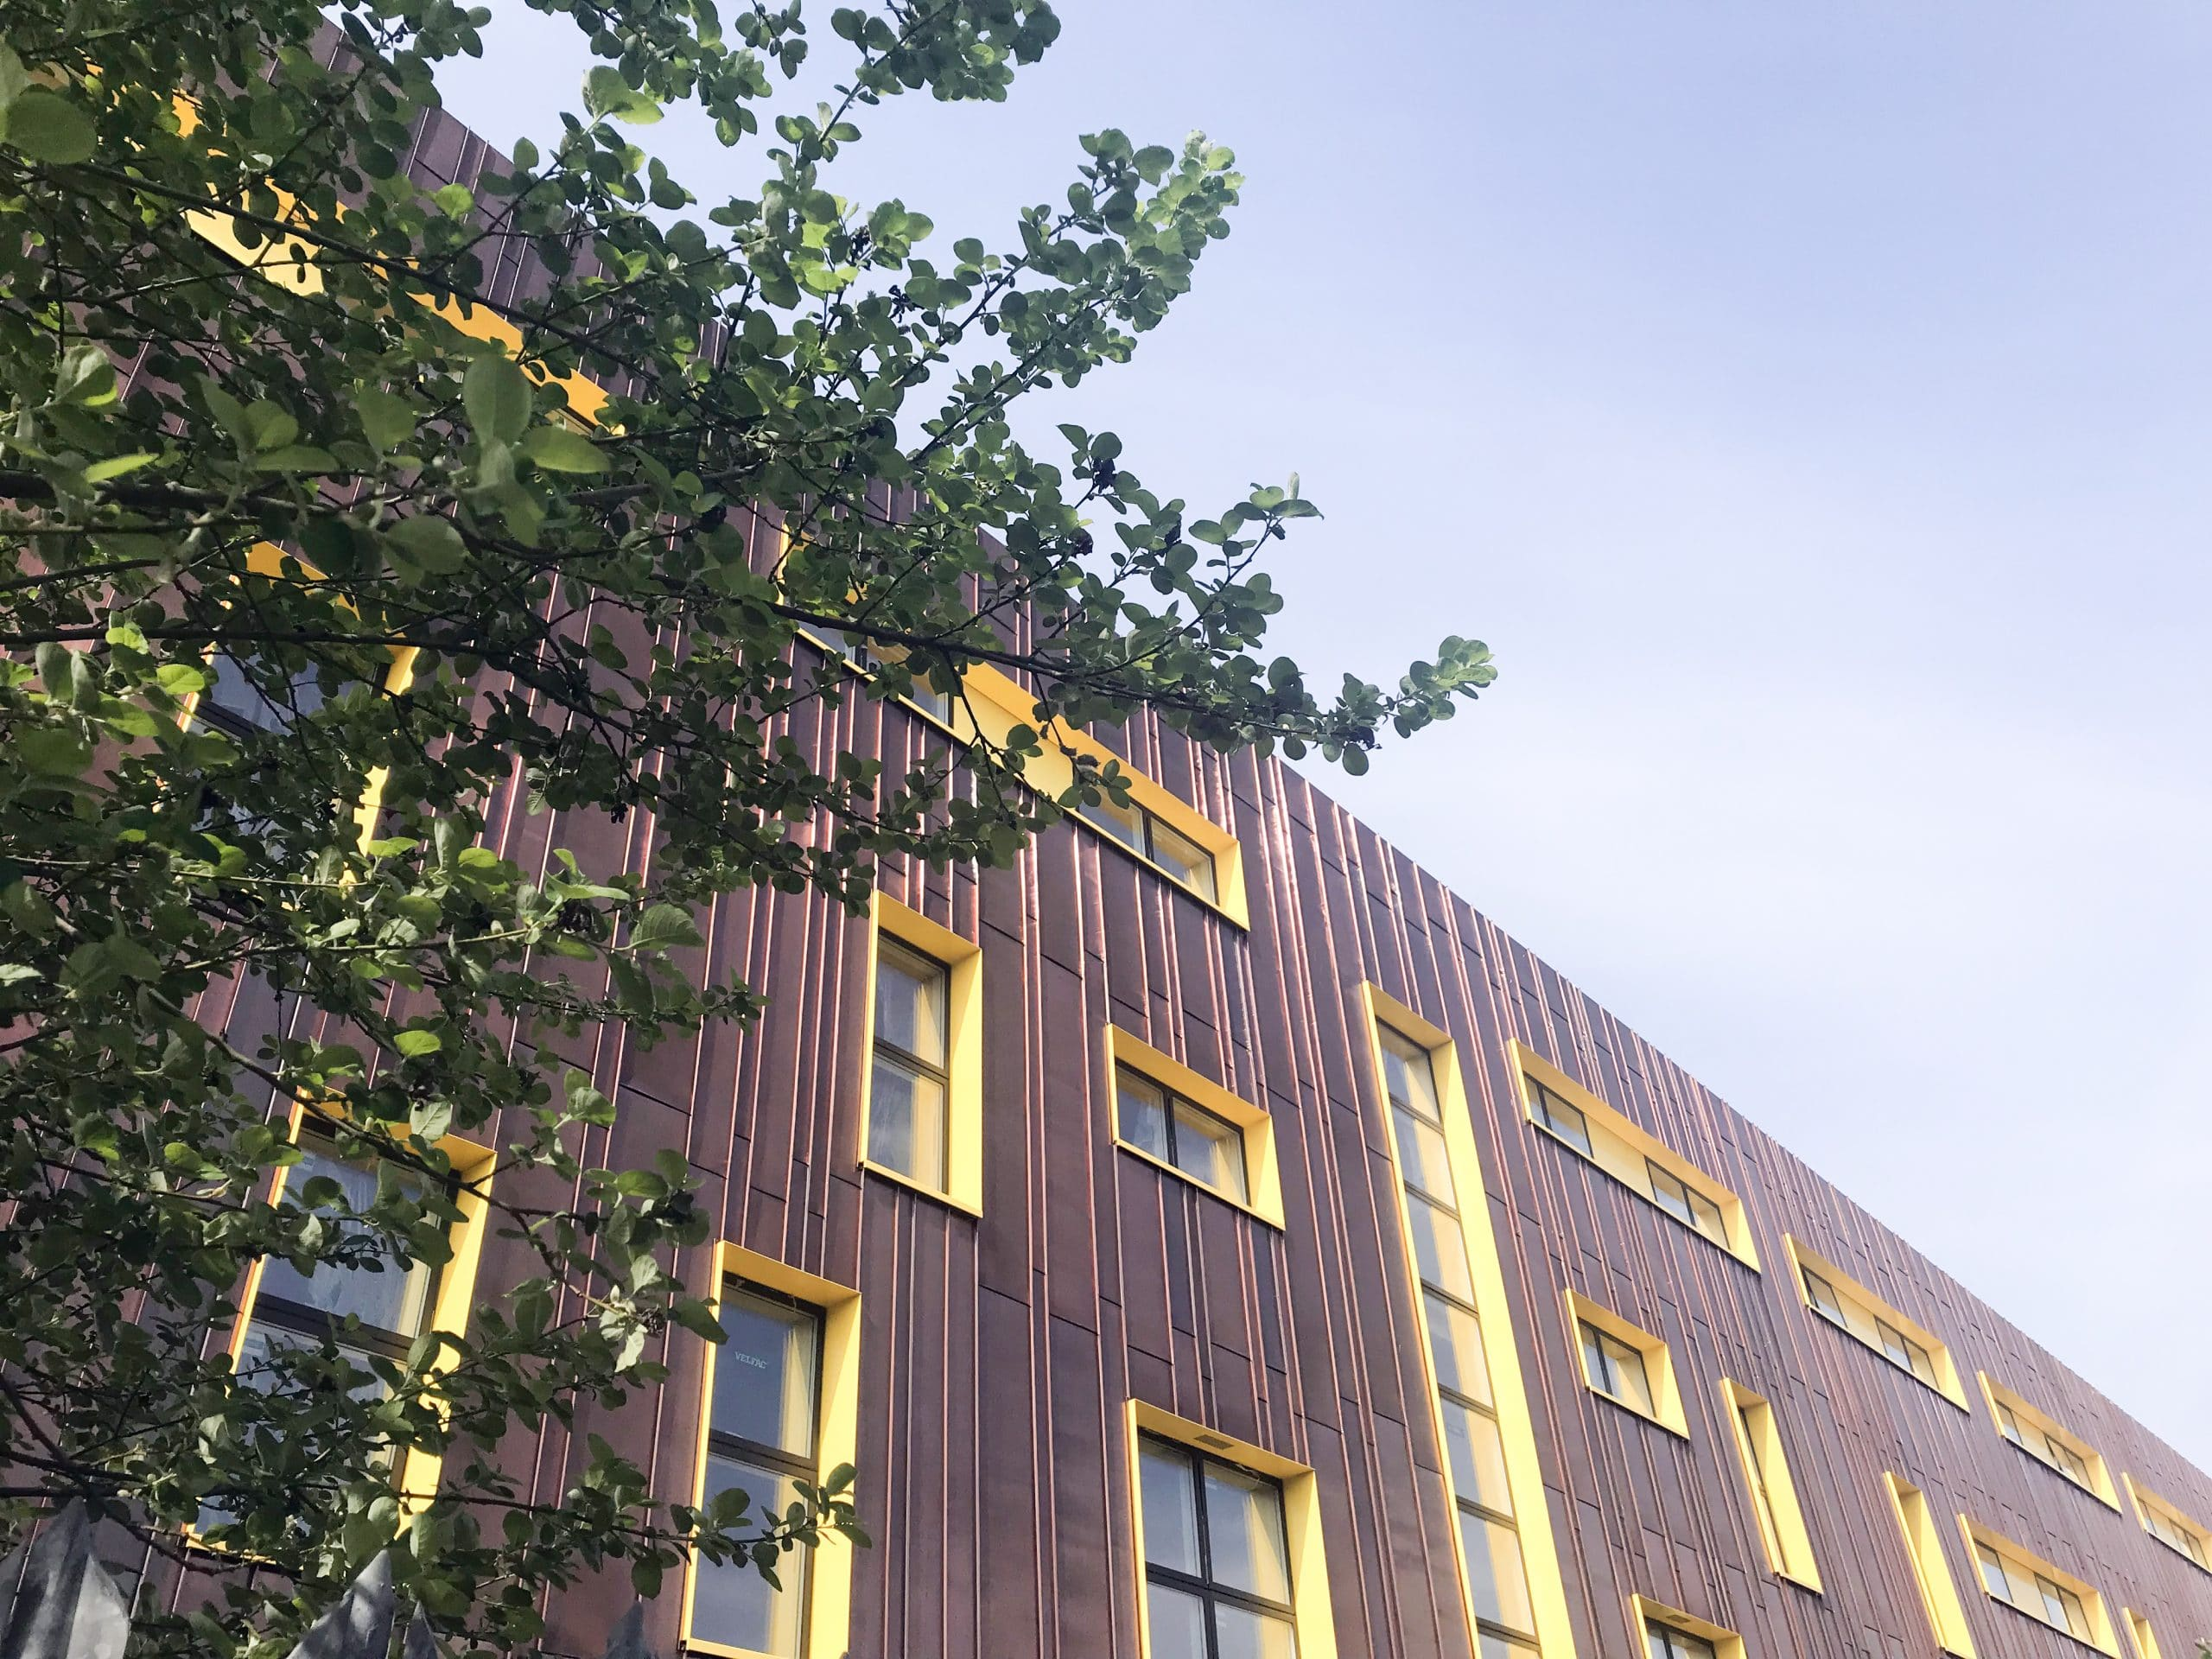 Main facade of the Copper Building located in Bristol, UK. Walls are clad from Nordic Brown copper.